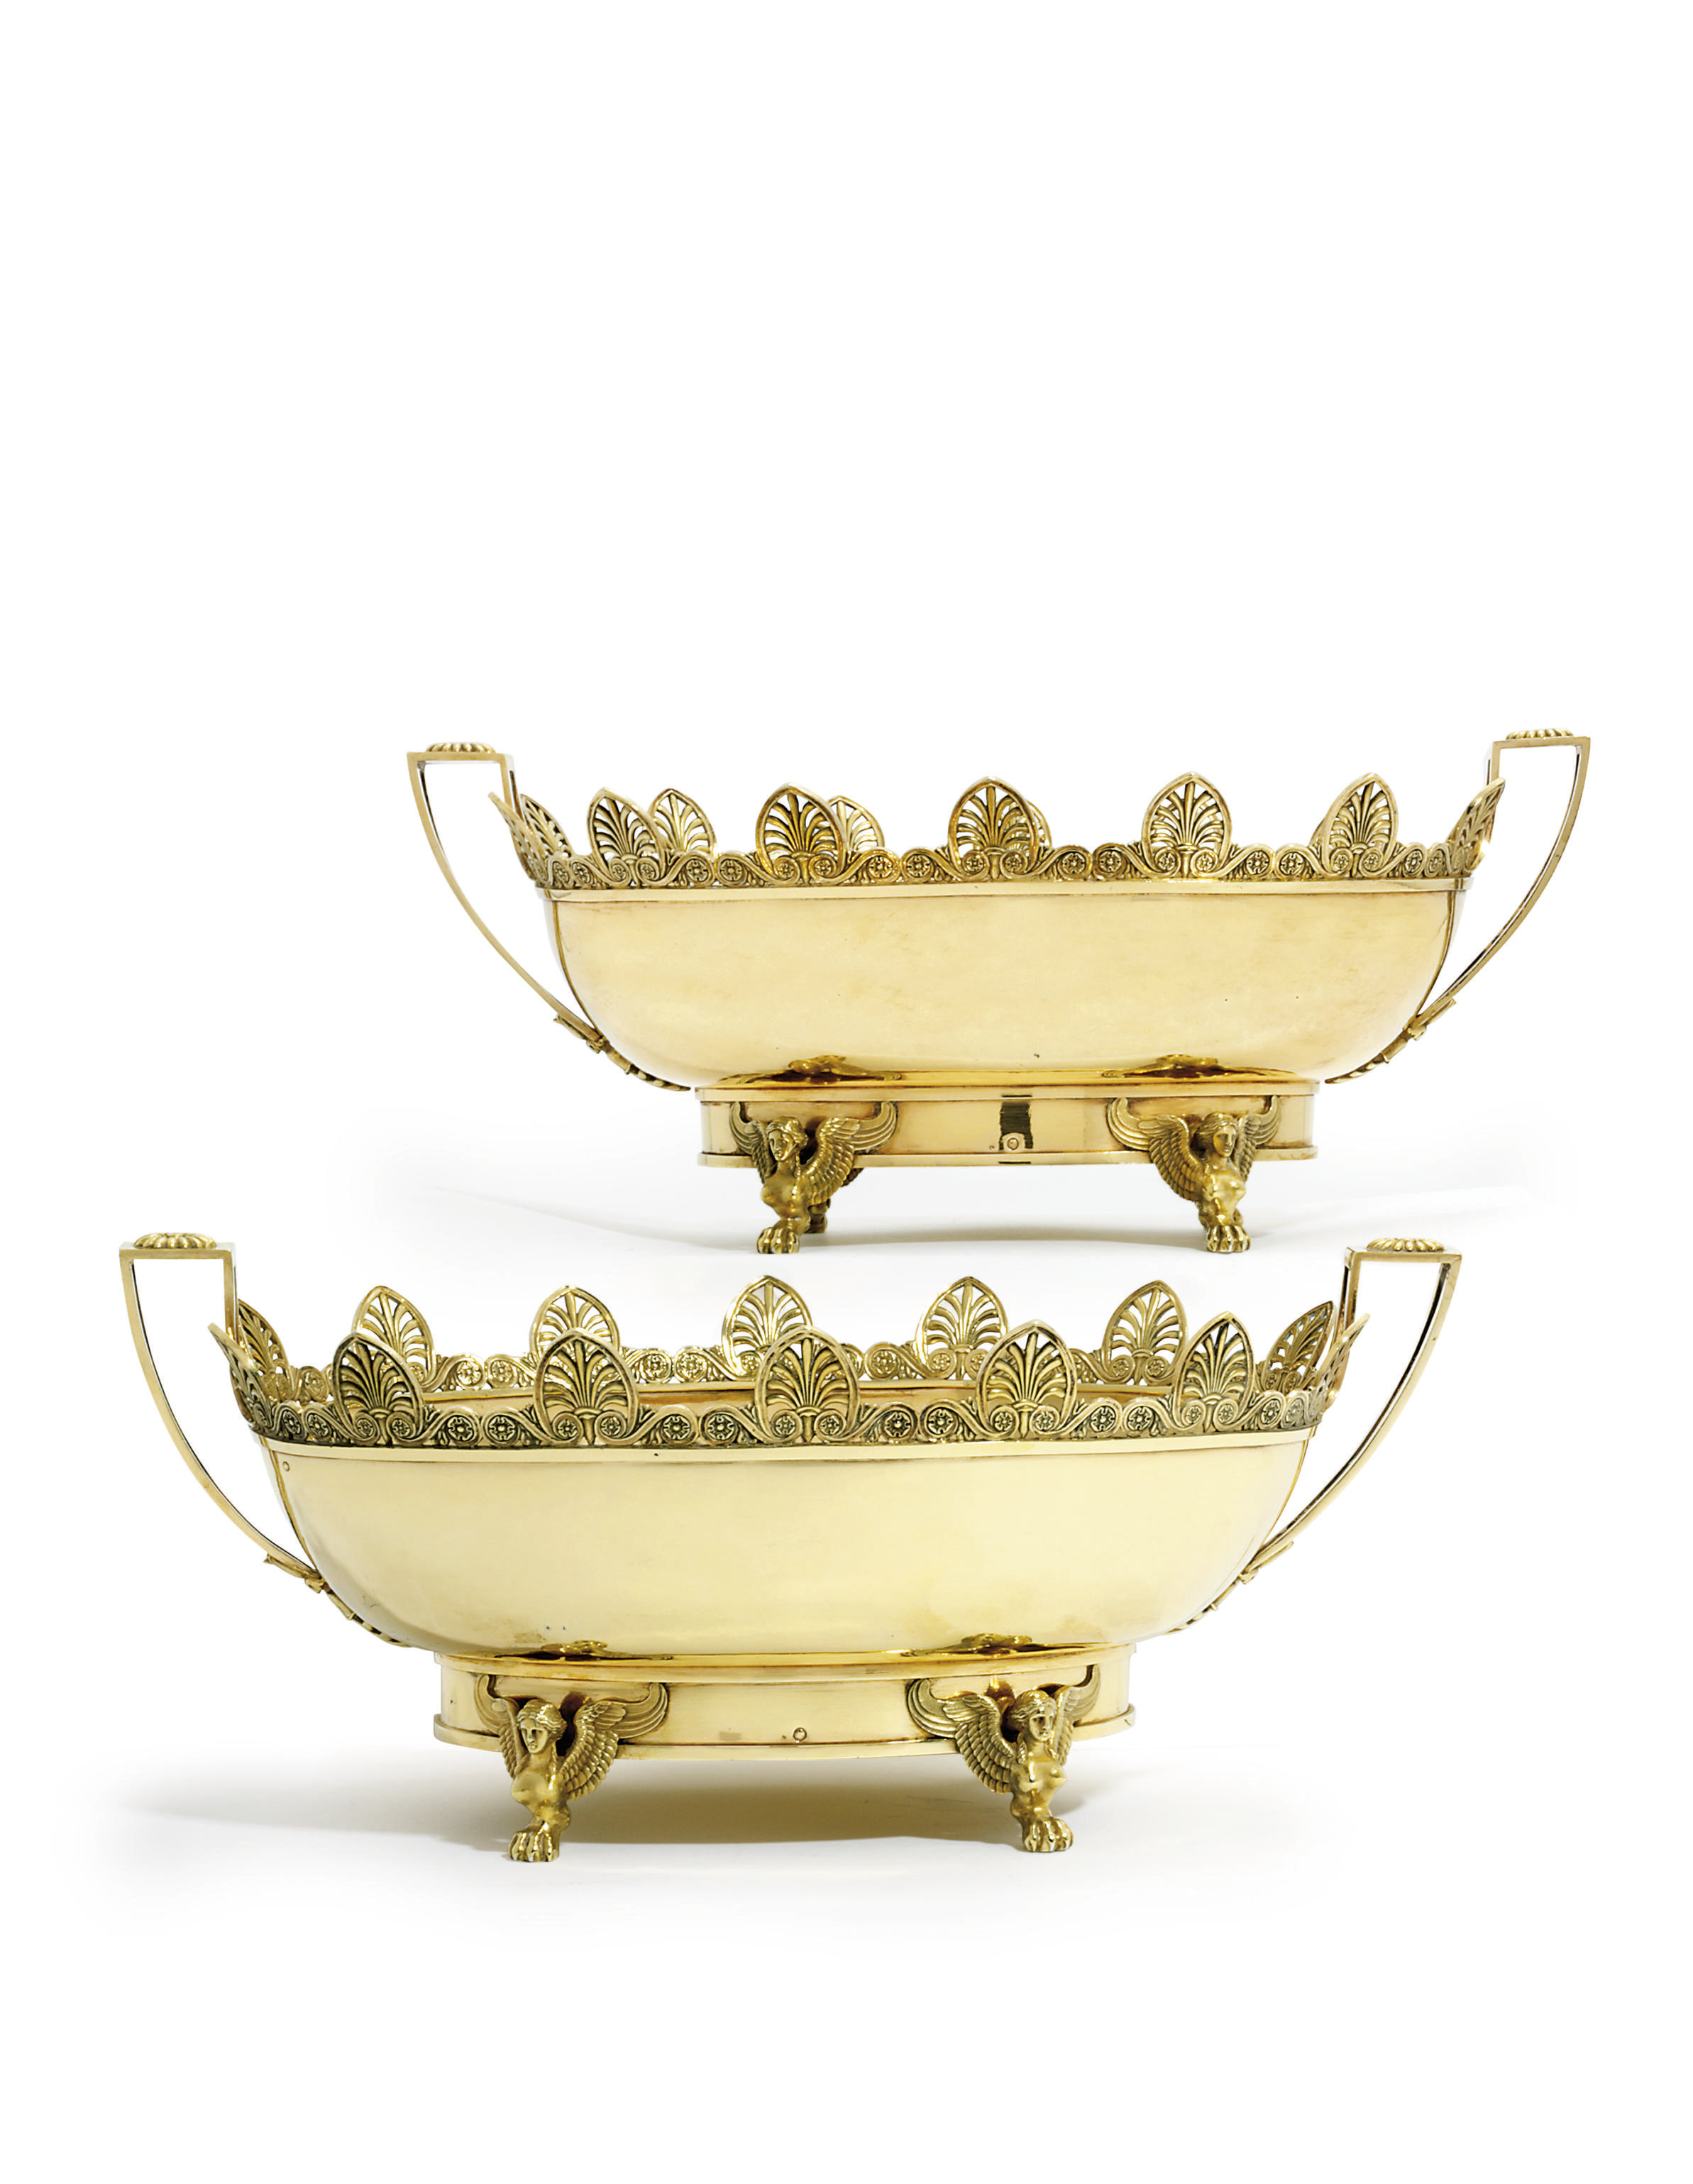 A PAIR OF FRENCH SILVER-GILT VERRIERES